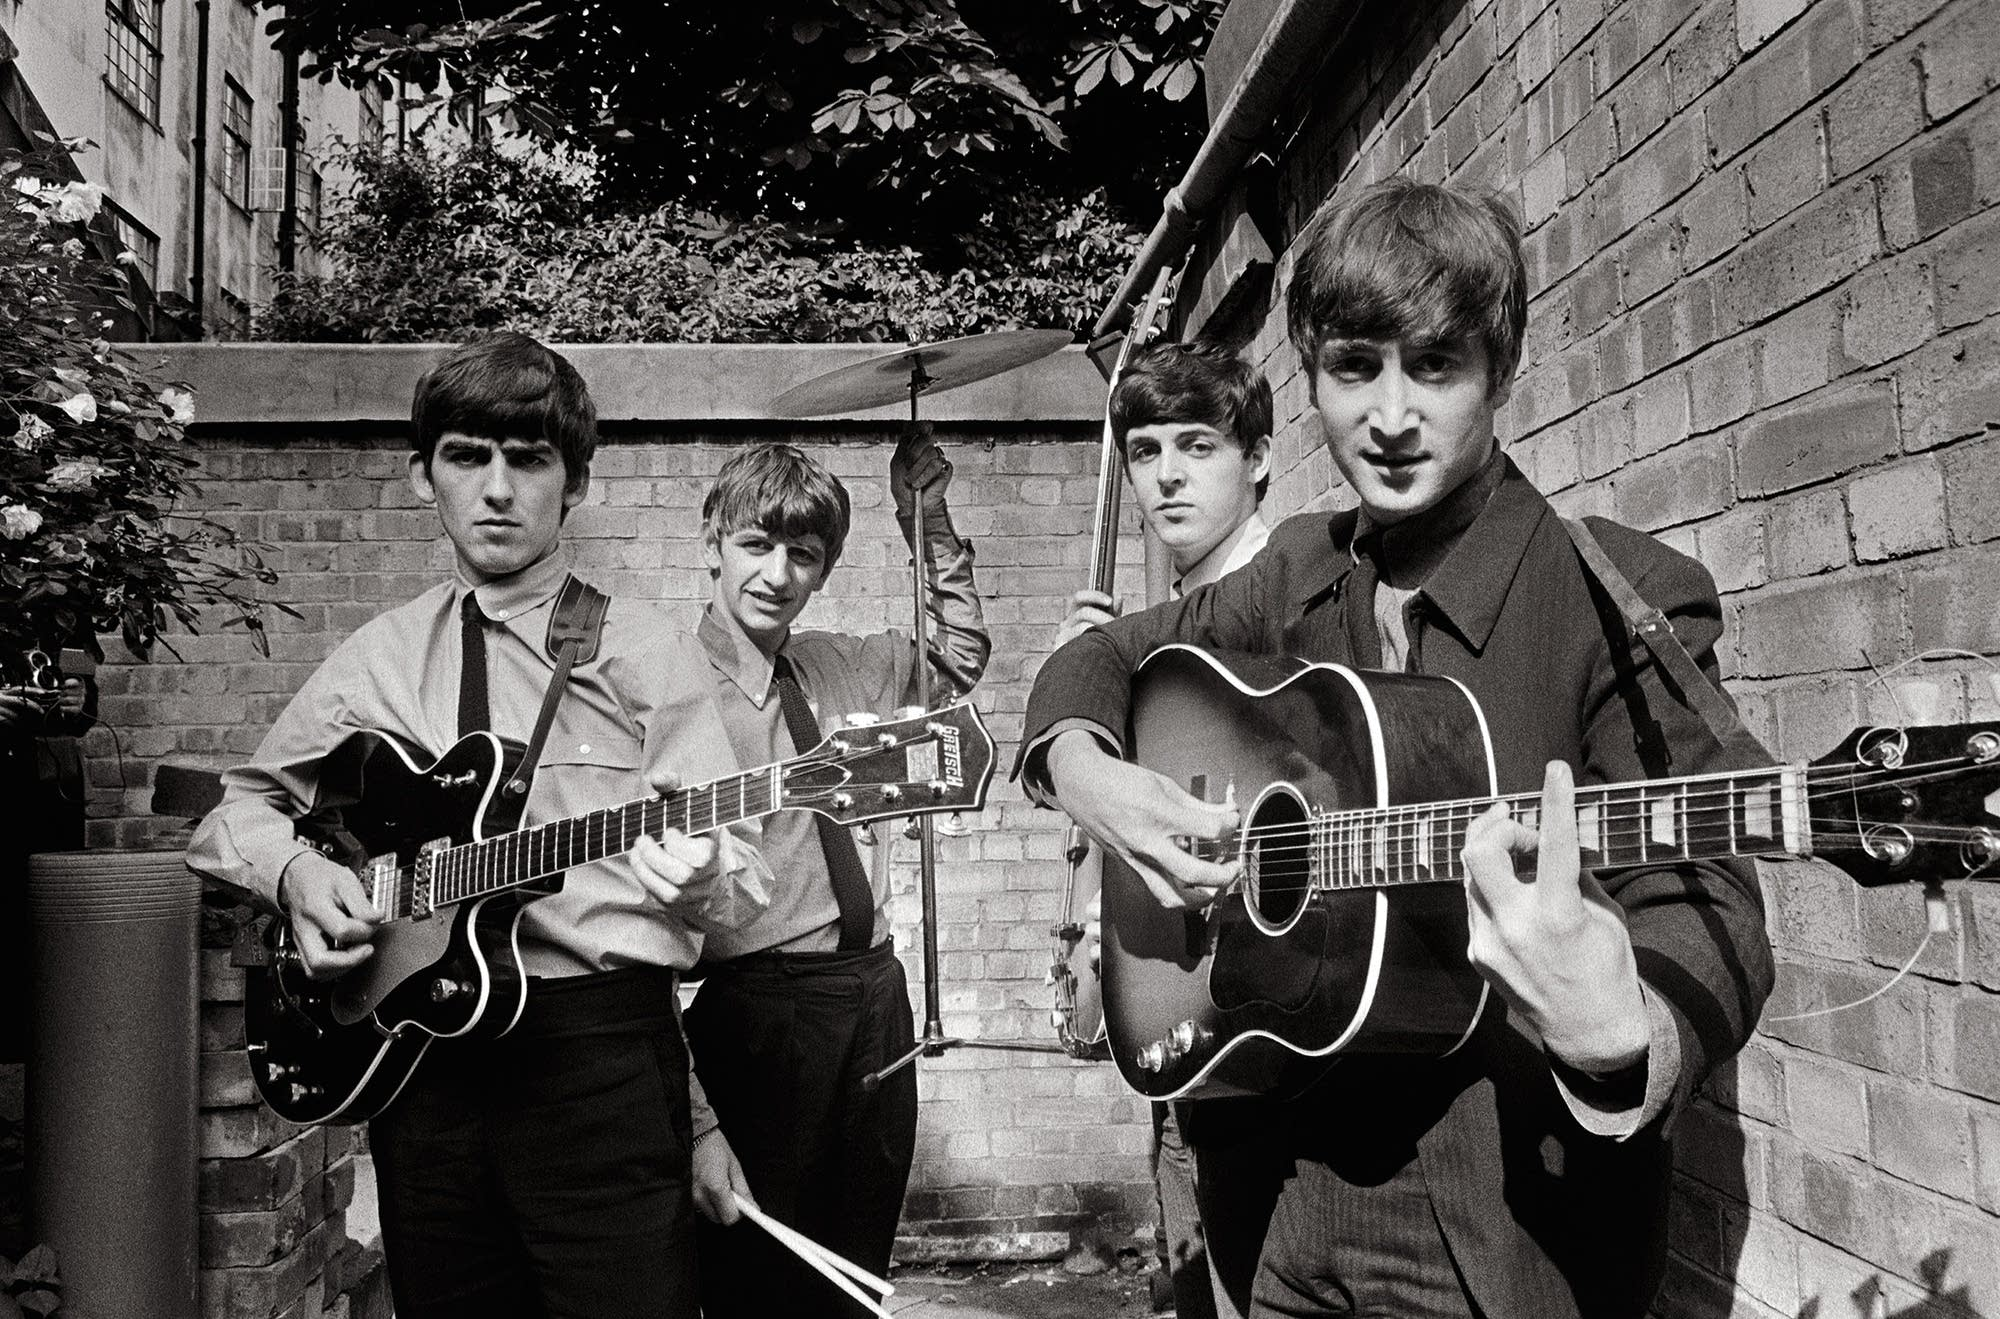 The first major group portrait of the Beatles